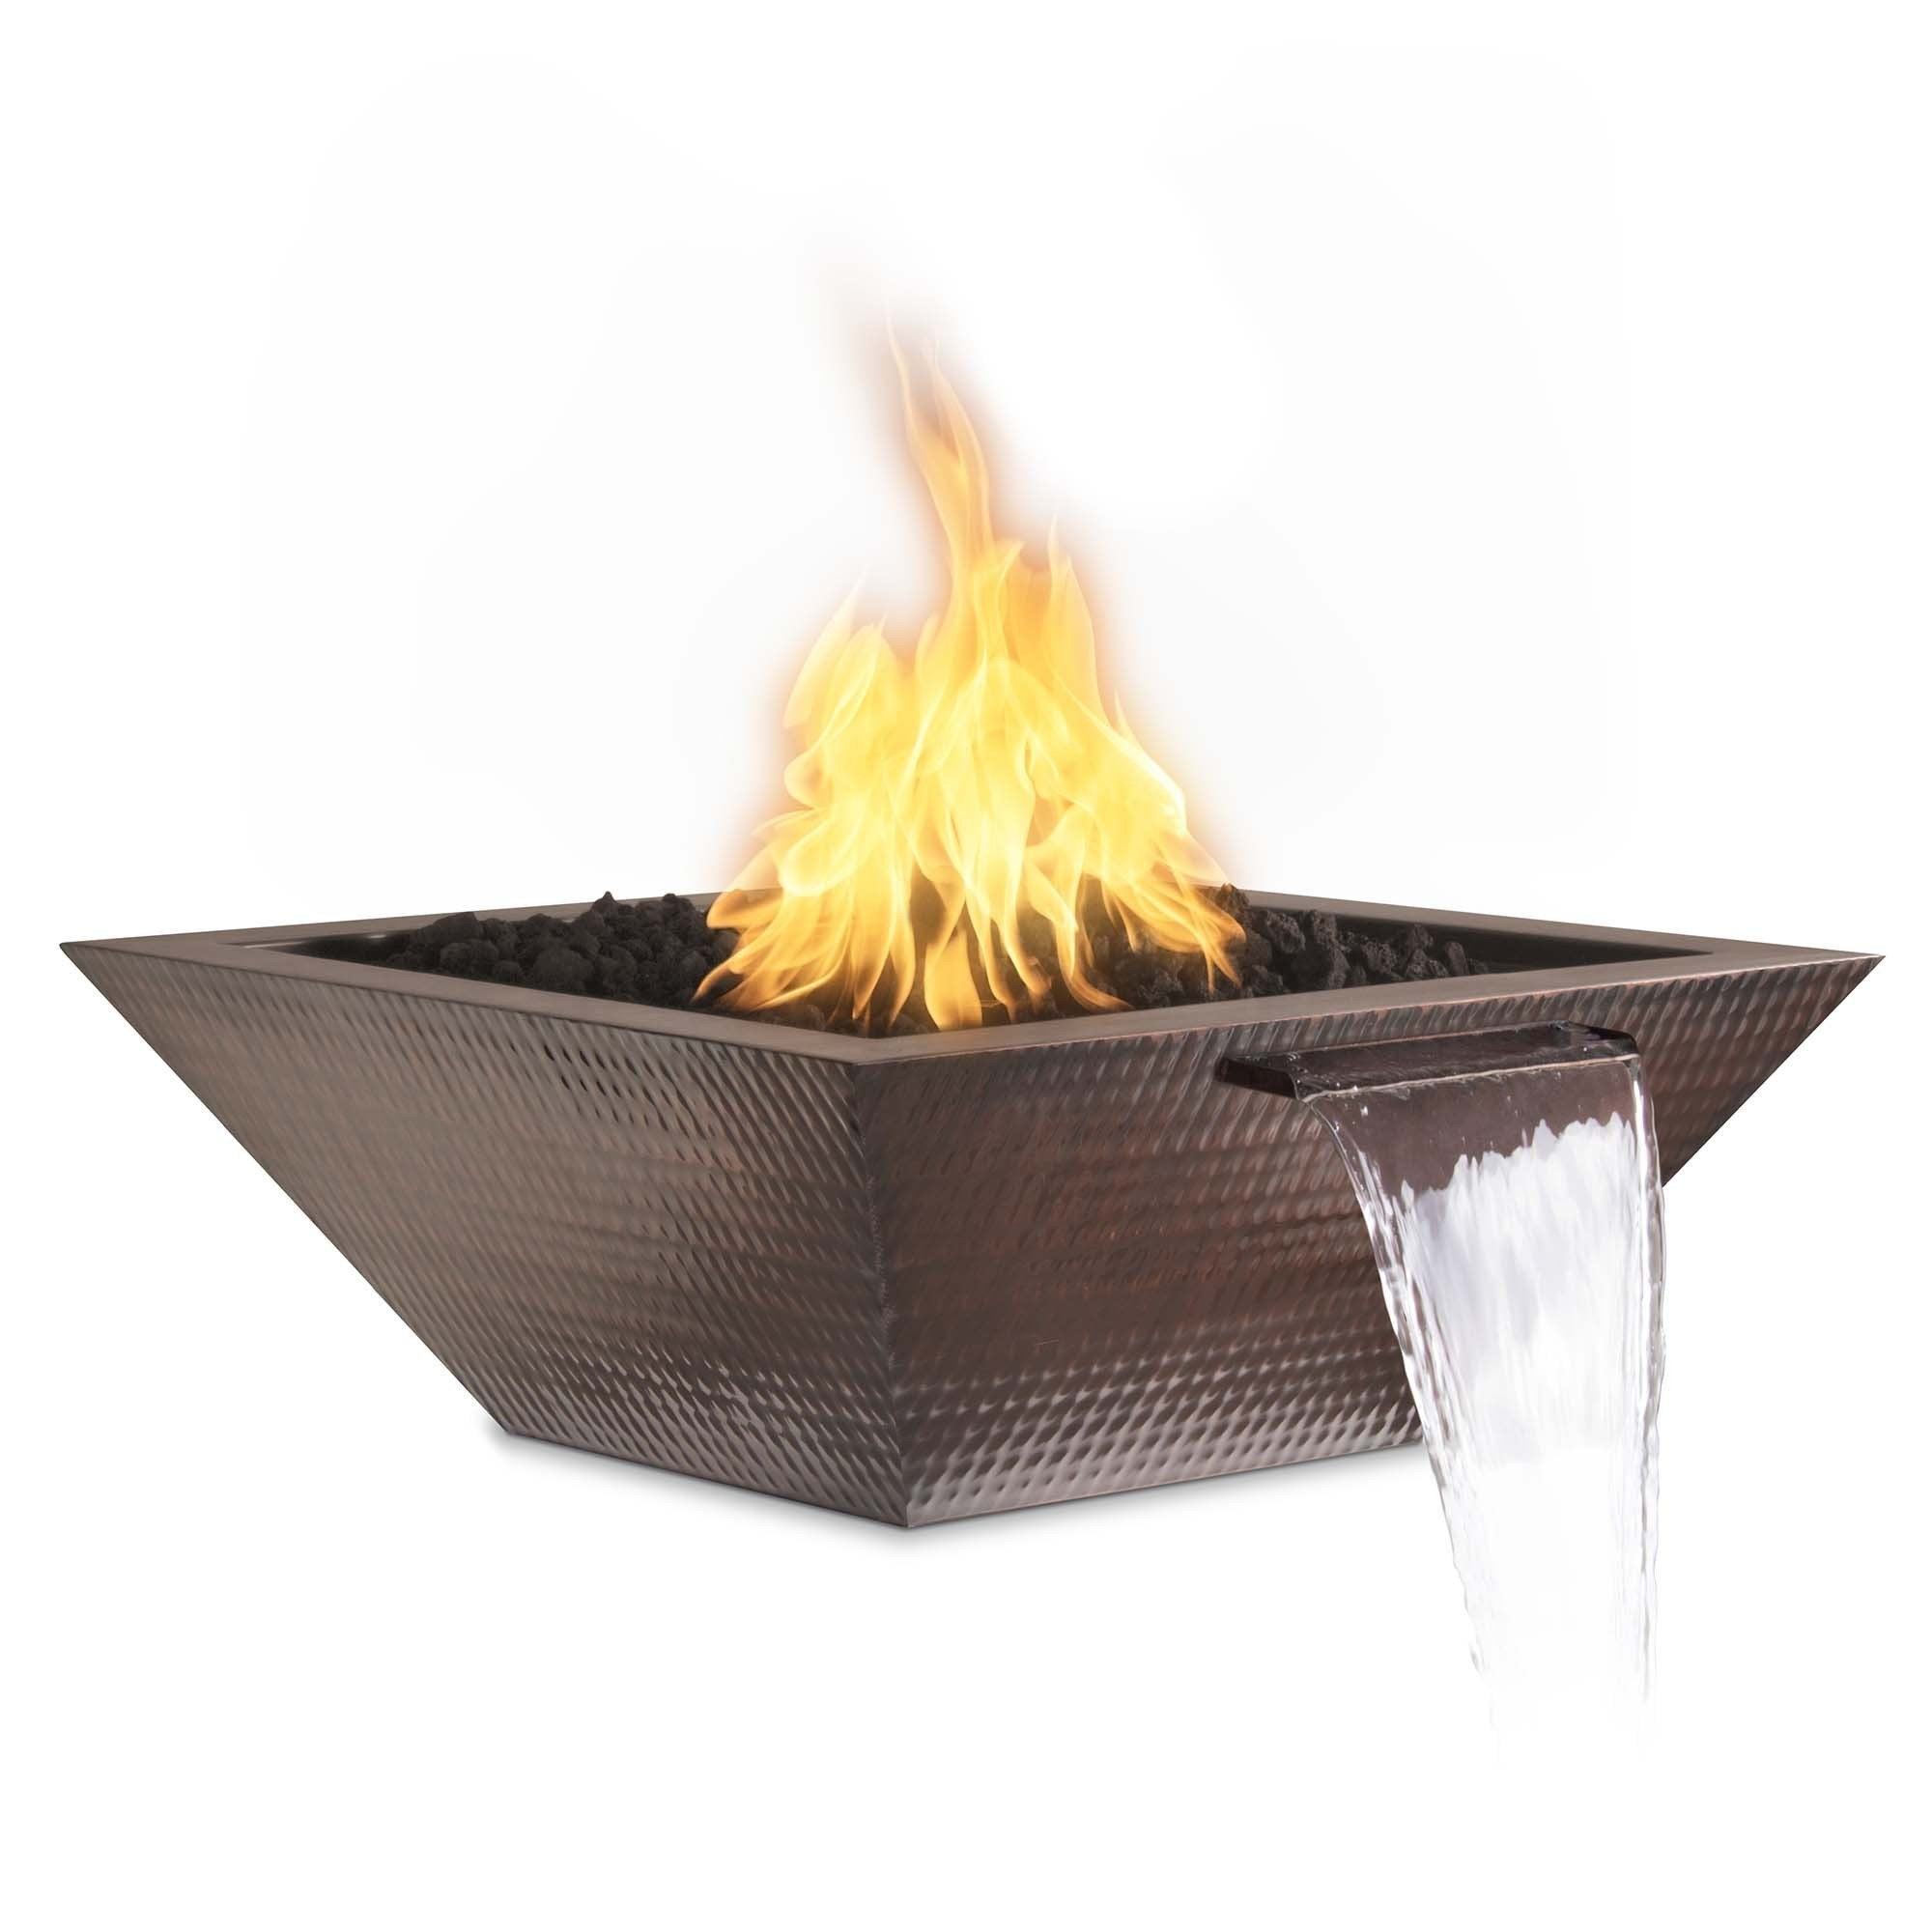 "TOP Fires by The Outdoor Plus Maya Hammered Patina Copper Fire & Water Bowl 24"" - Fire Pit Oasis"